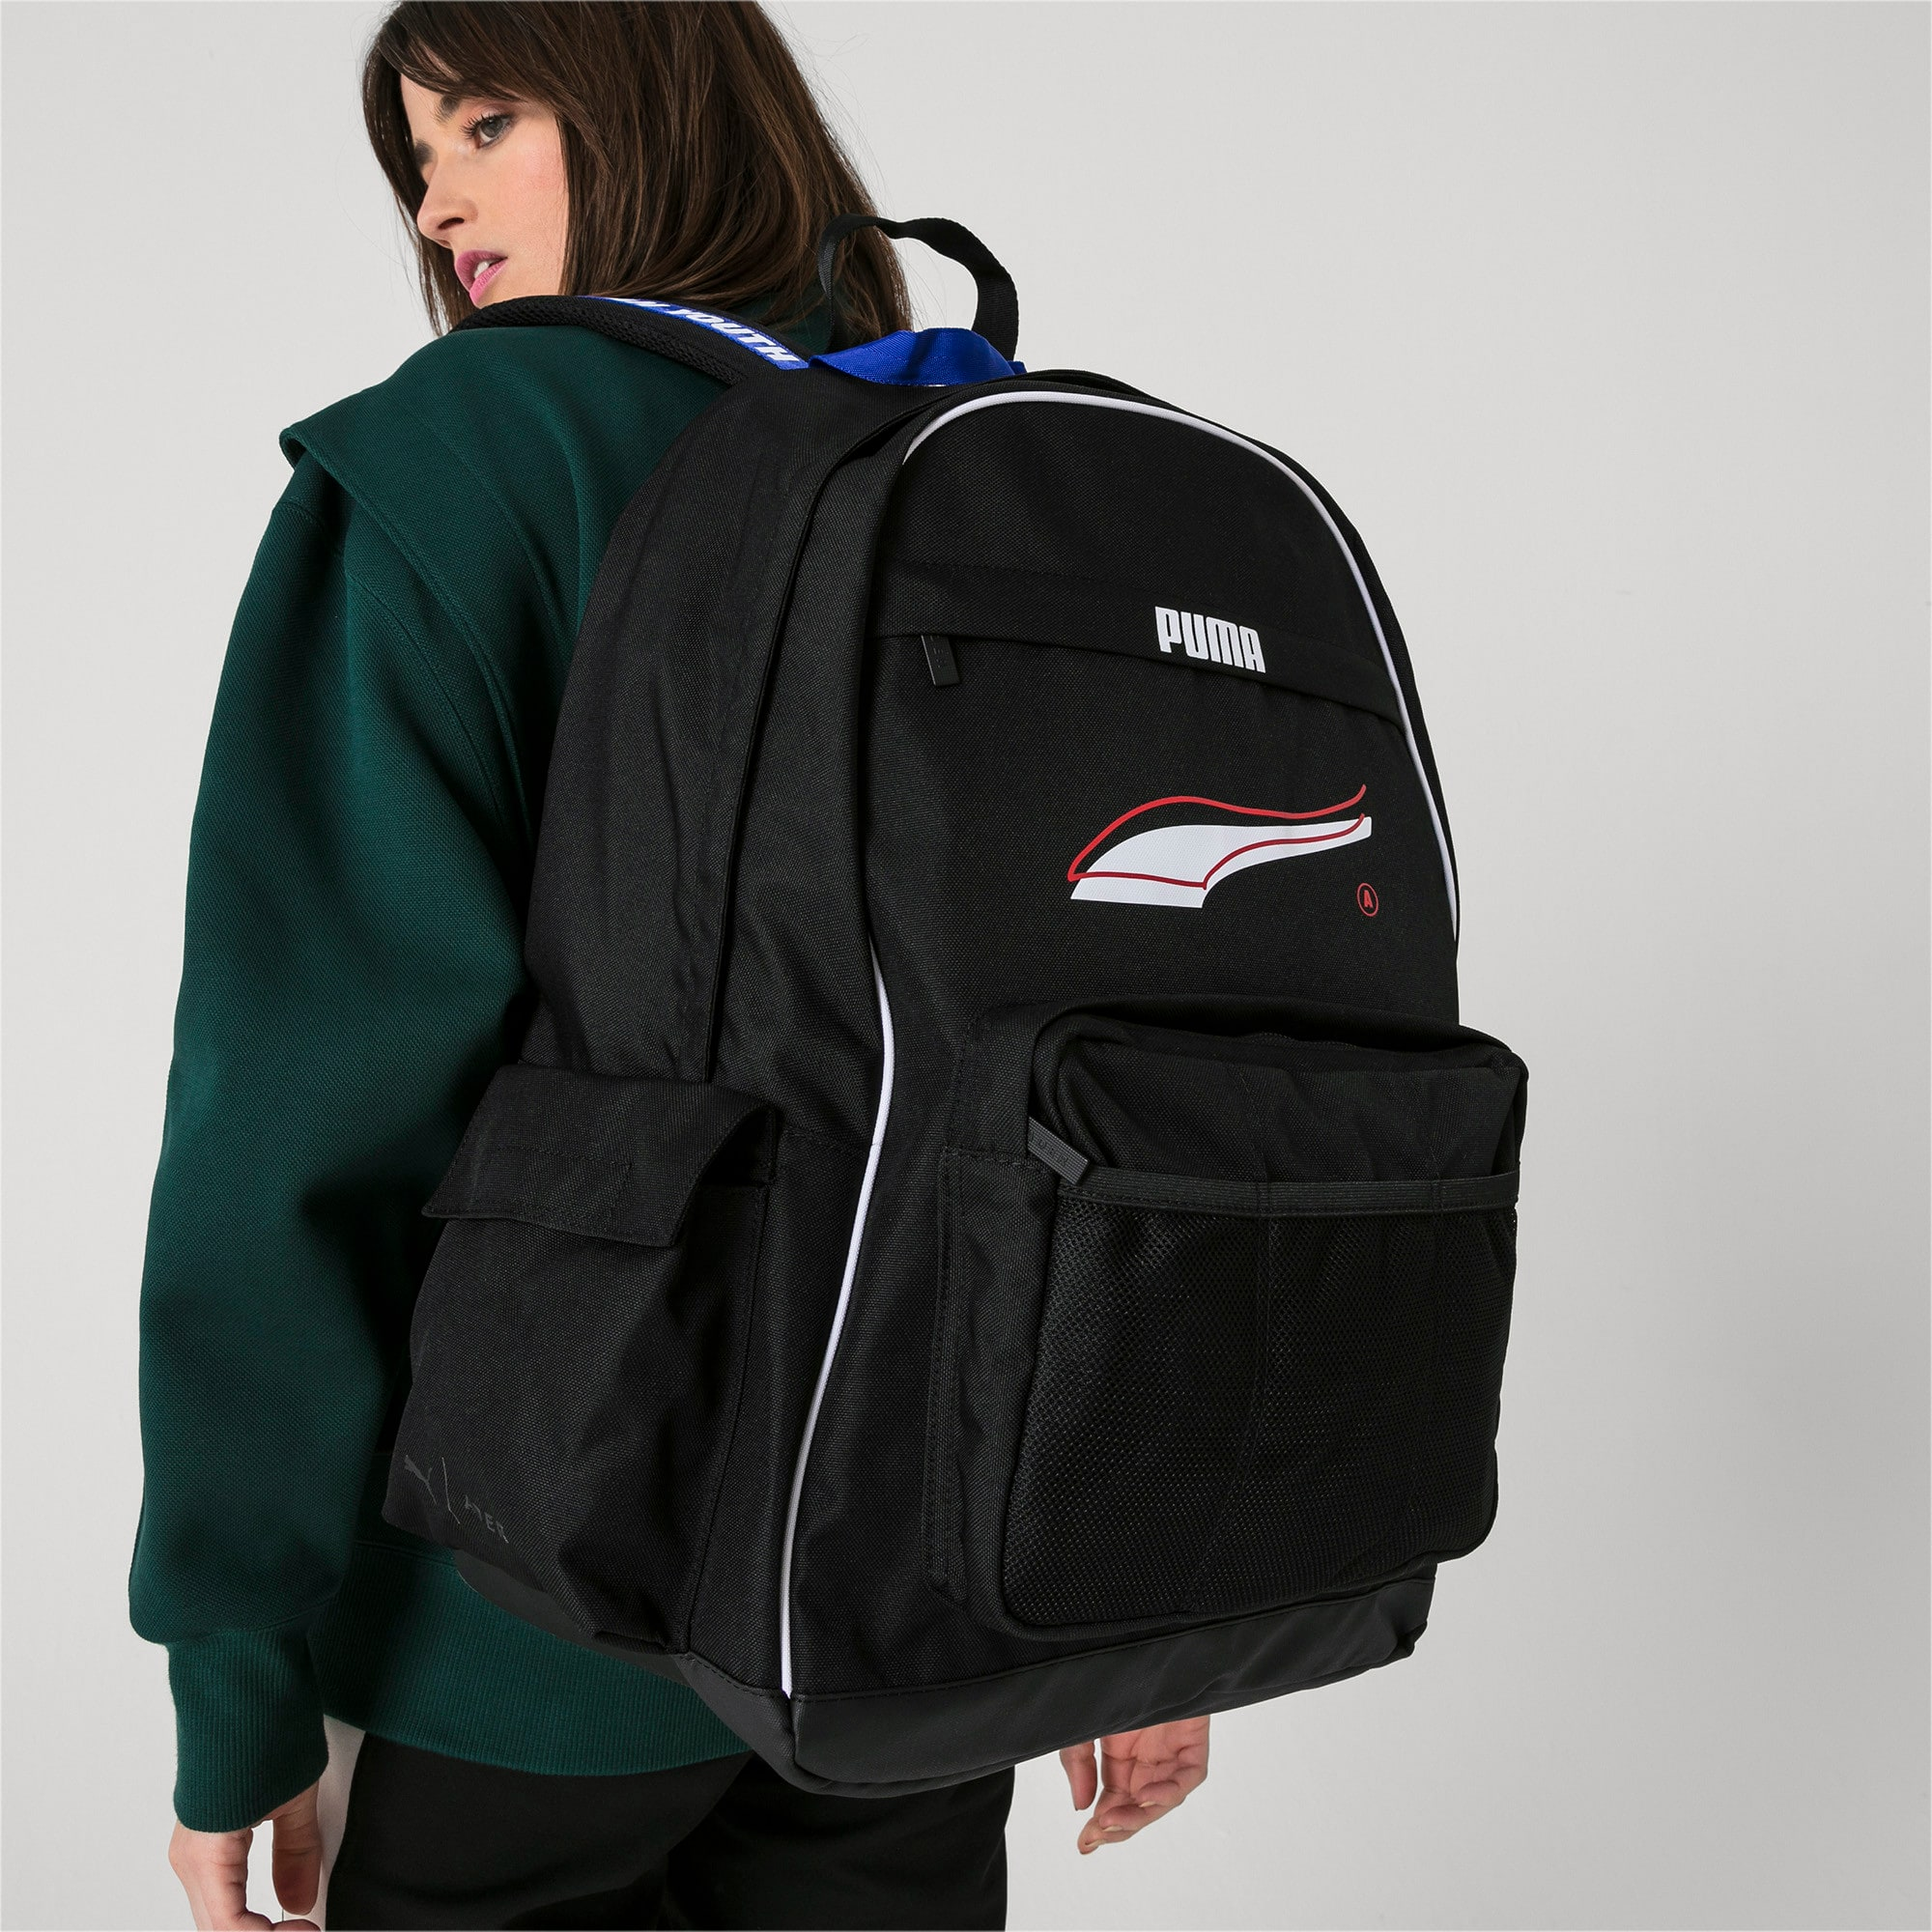 Thumbnail 5 of PUMA x ADER ERROR Backpack, Puma Black, medium